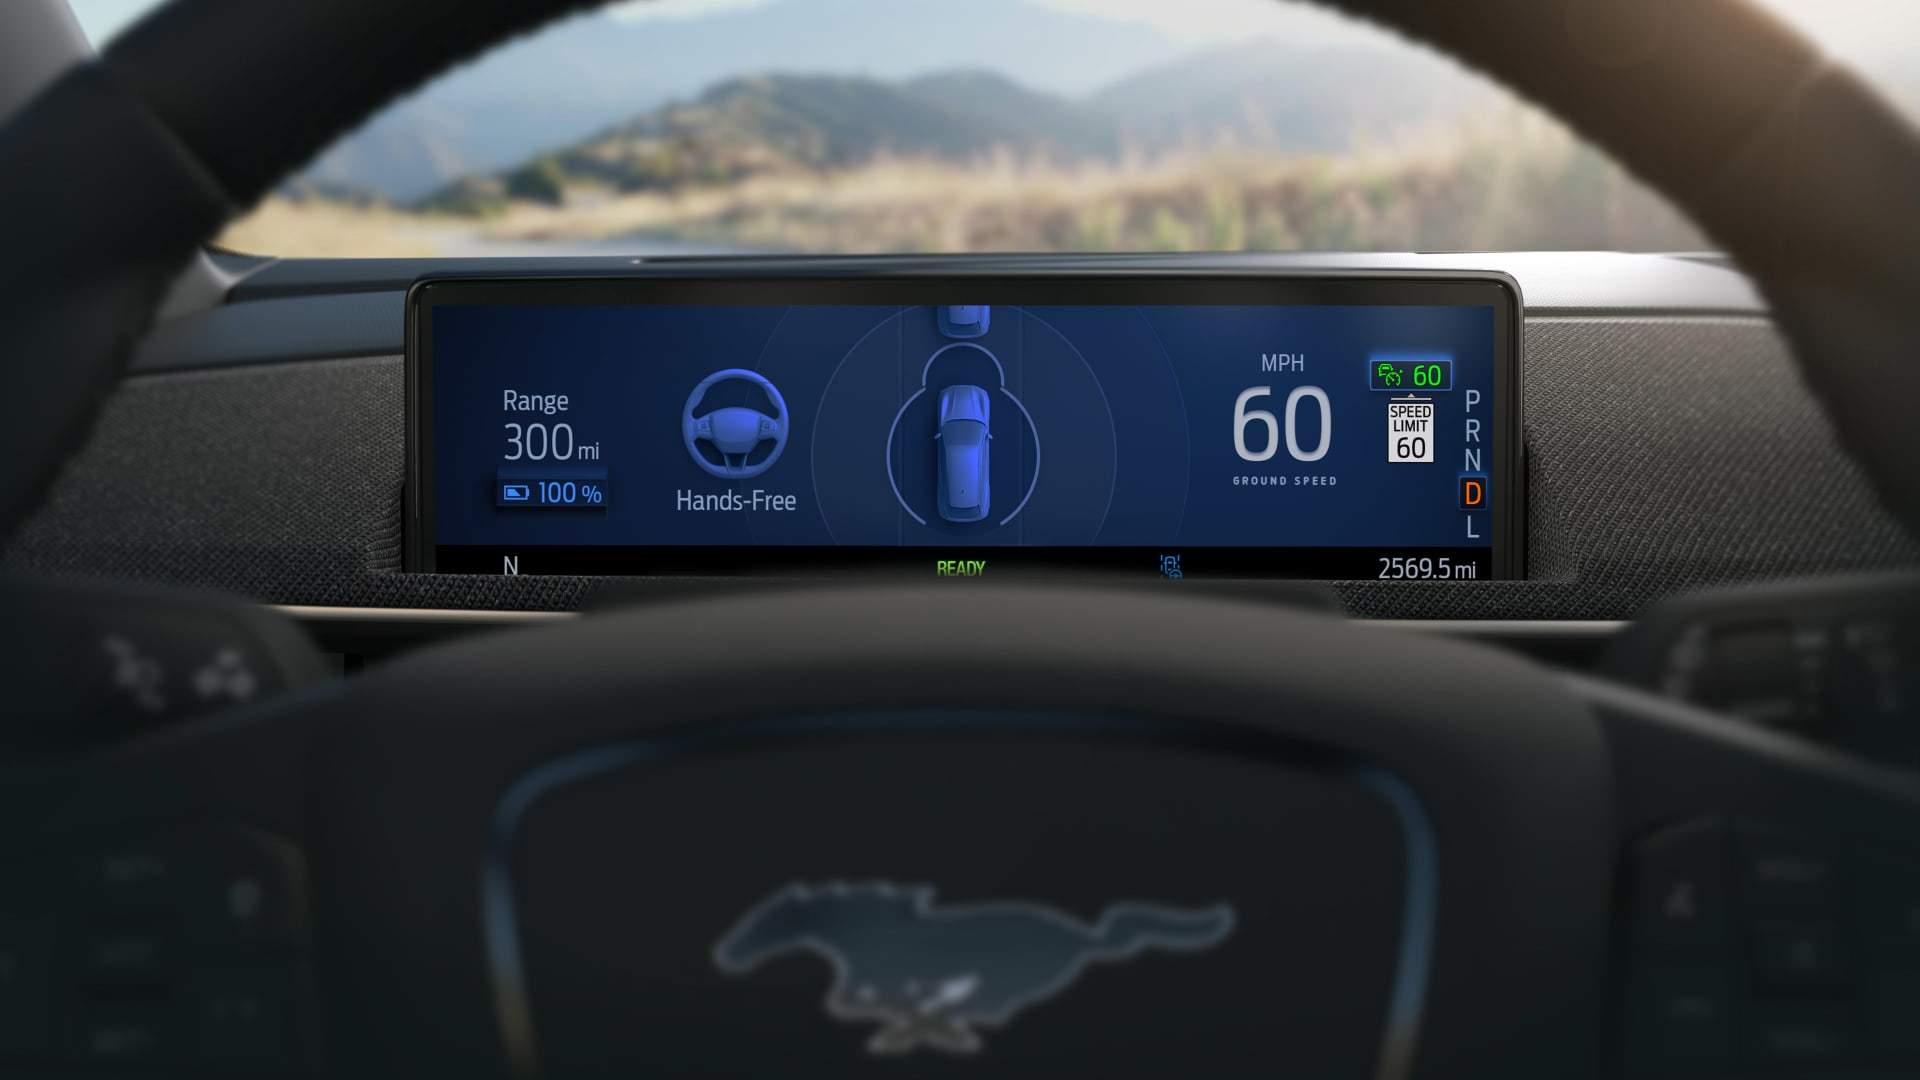 Ford says its Active Drive Assist system will allow for hands-free driving on more than 100,000 miles of divided highways in the U.S. and Canada.